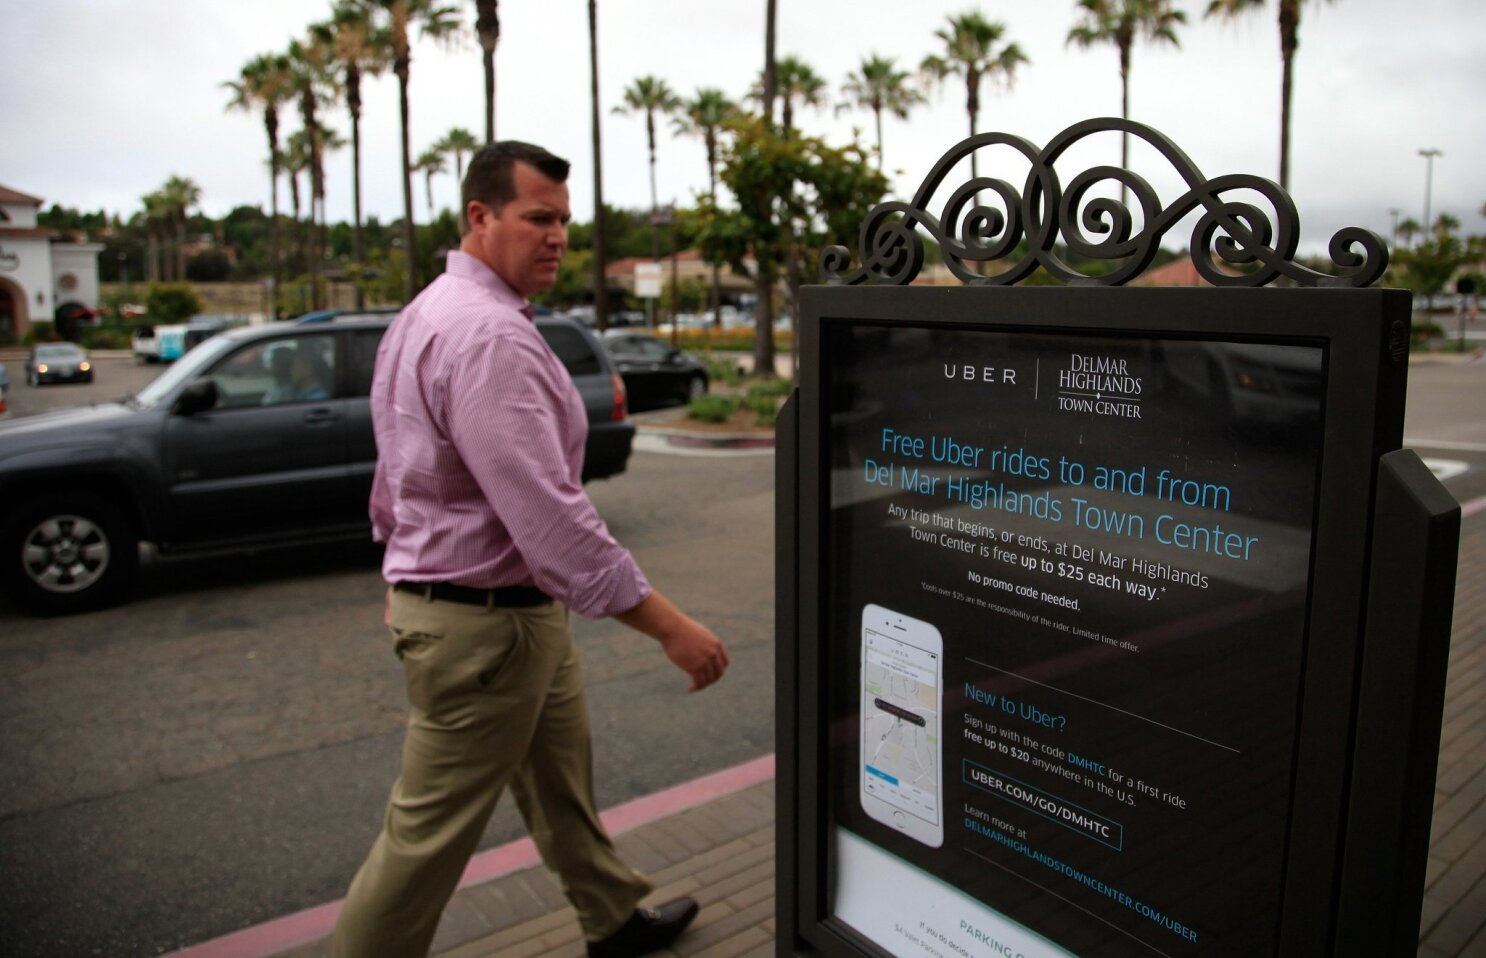 Del Mar Highlands comping Uber rides for shoppers - The San Diego